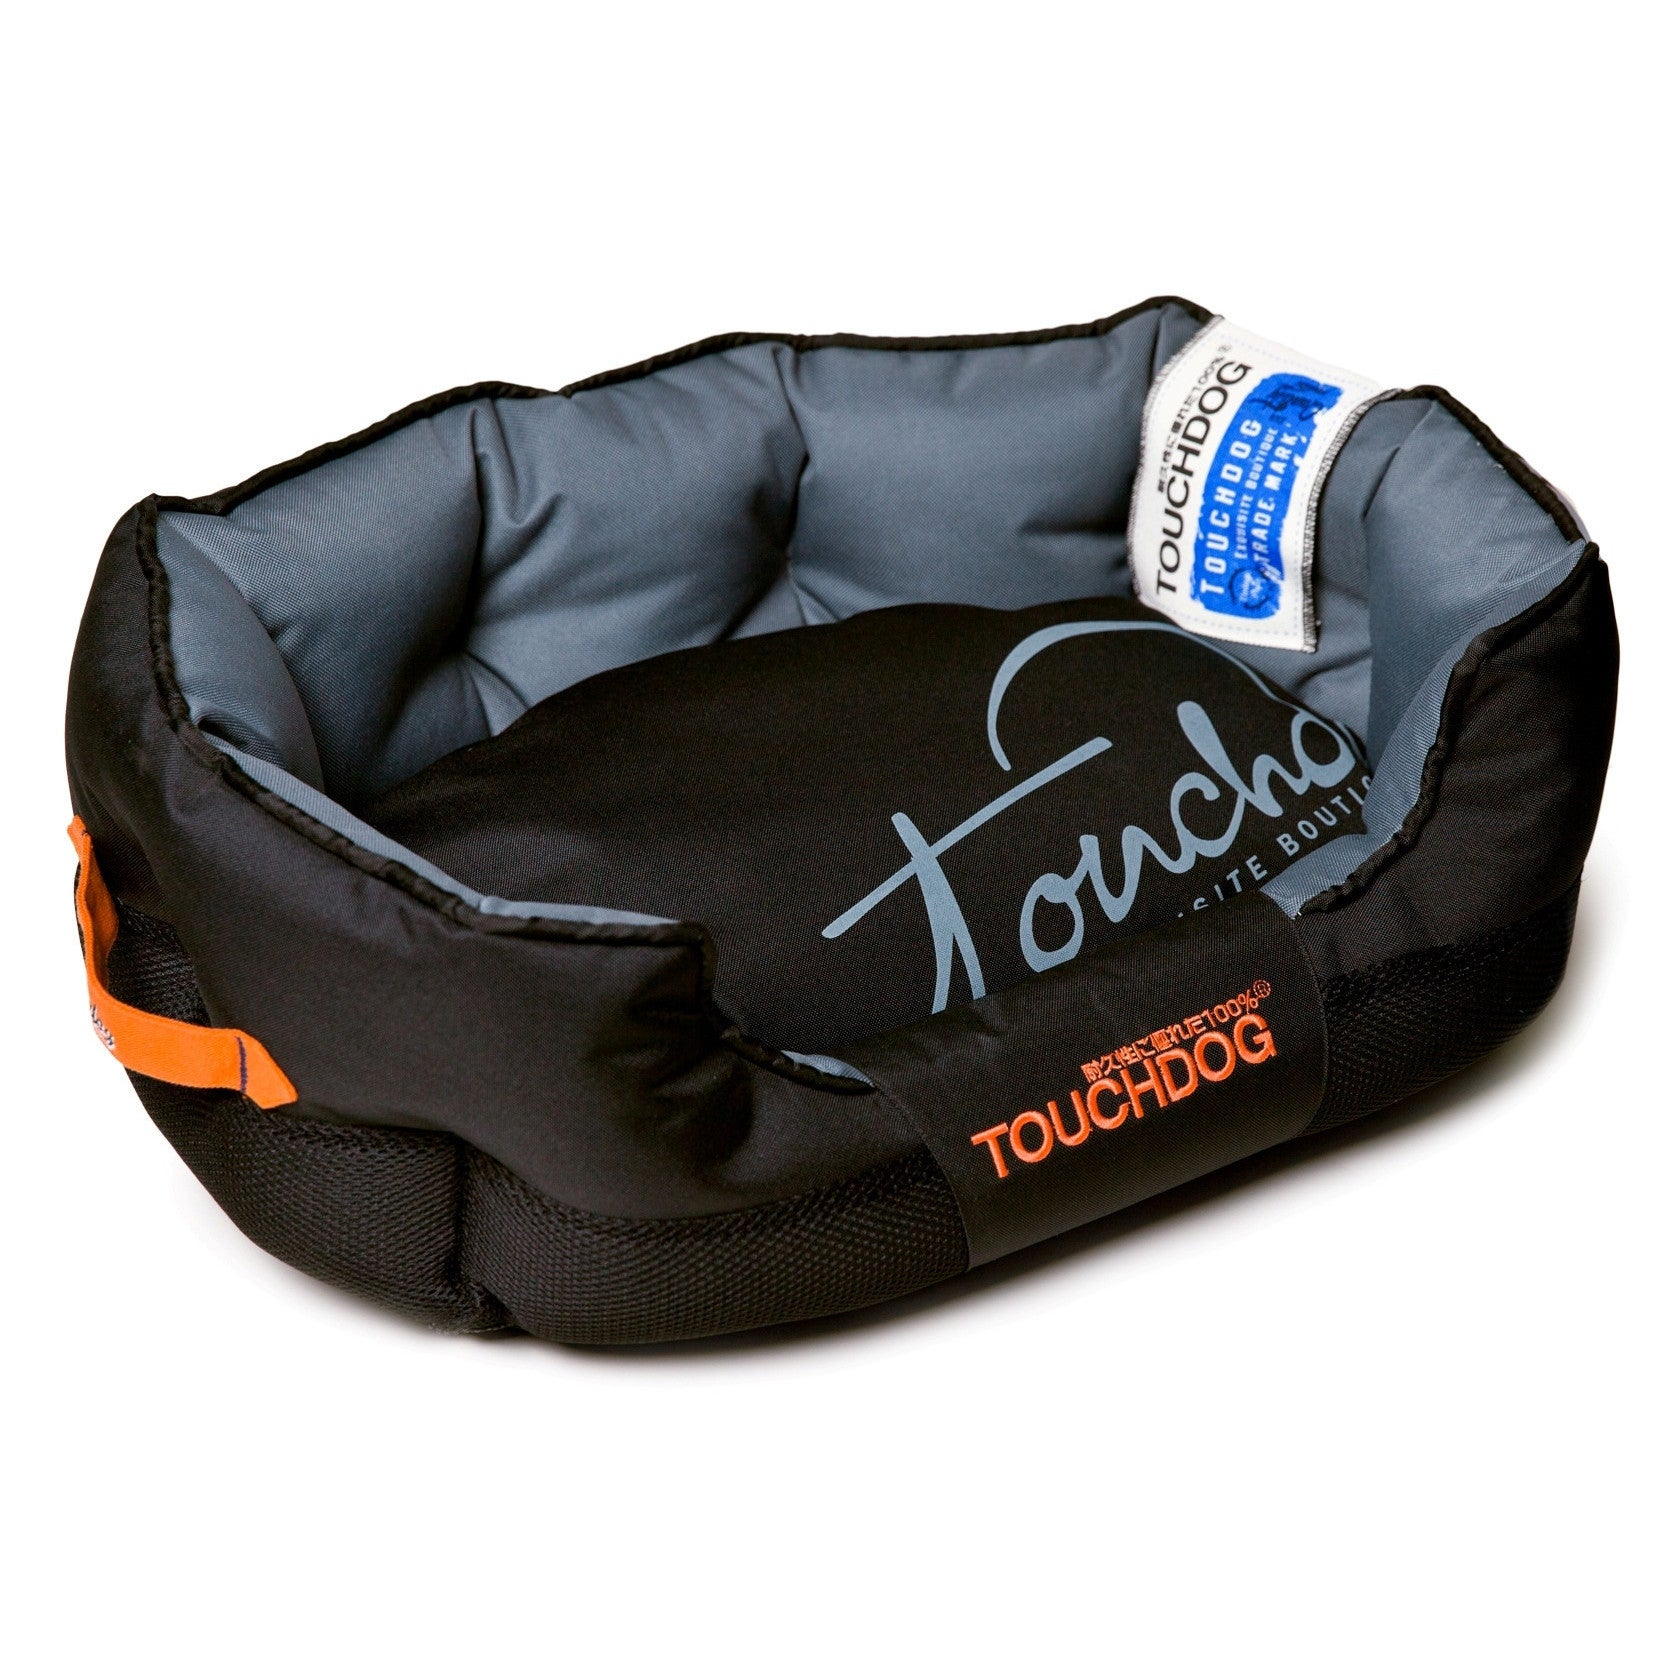 Petlife Toughdog Performance-Max Sporty Comfort Cushioned...